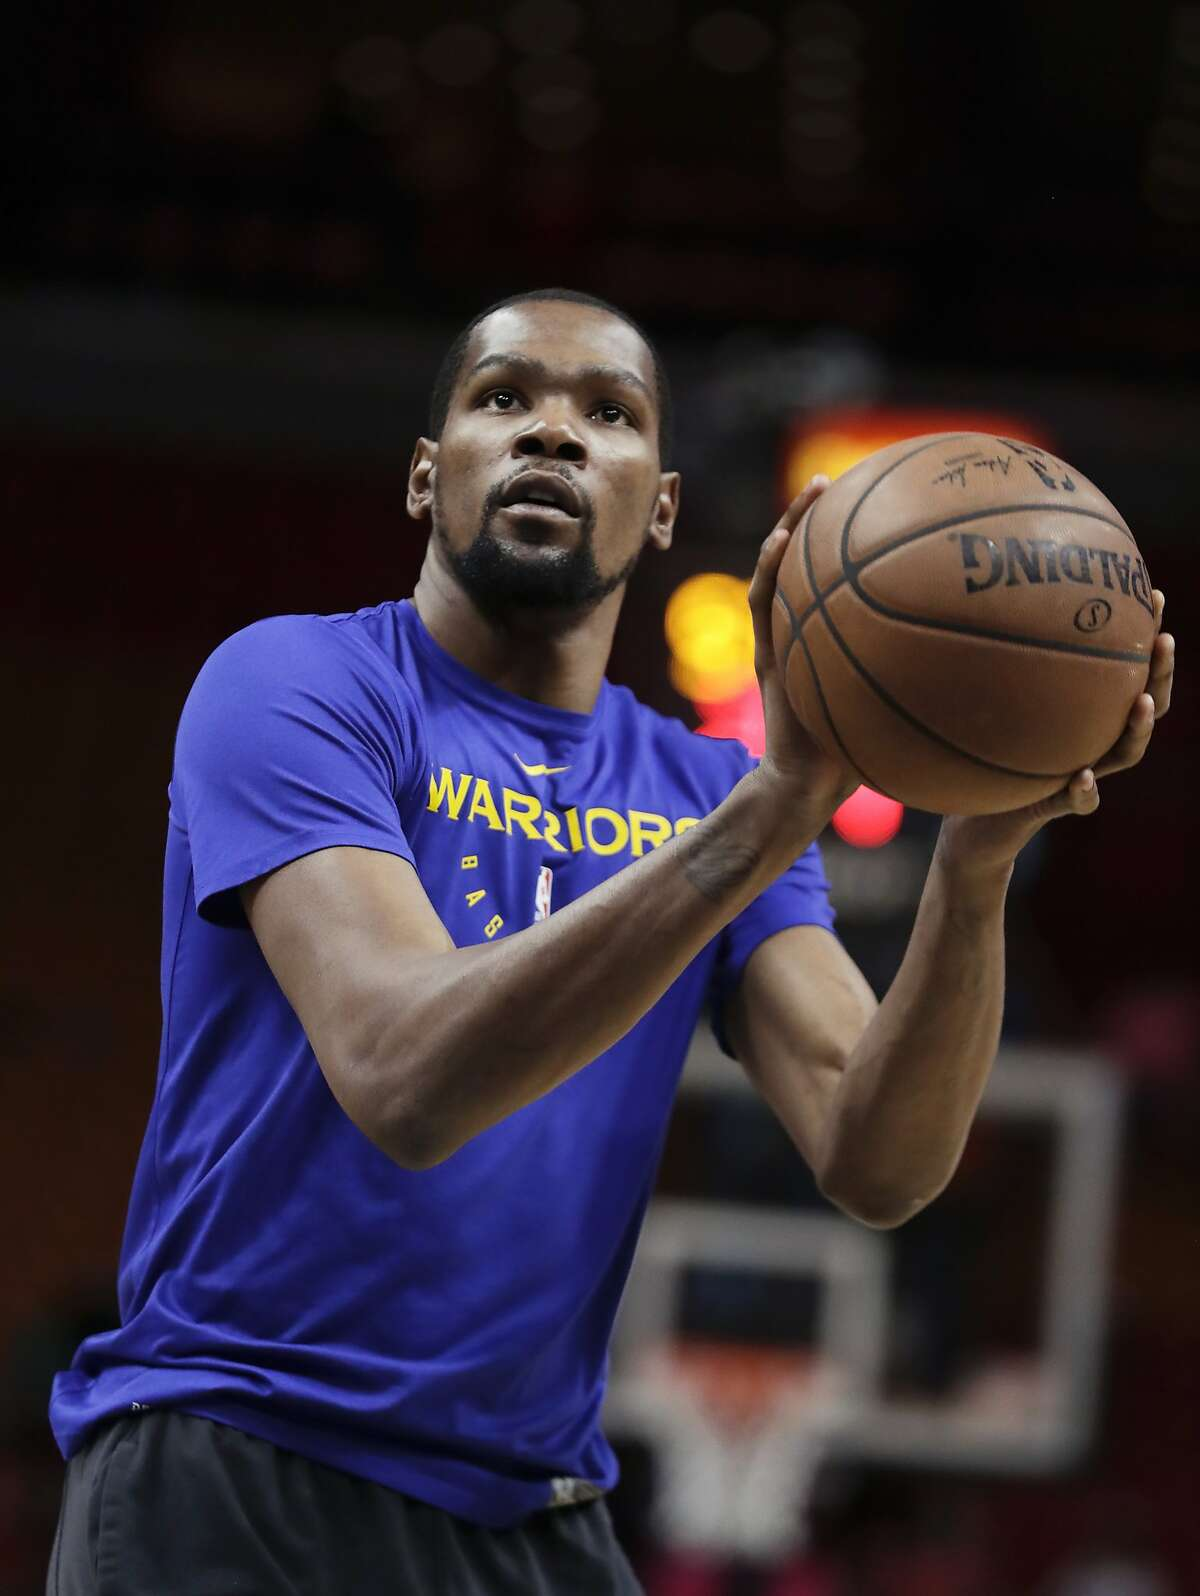 Golden State Warriors forward Kevin Durant (35) in action during practice before an NBA basketball game Wednesday, Feb. 27, 2019, in Miami.